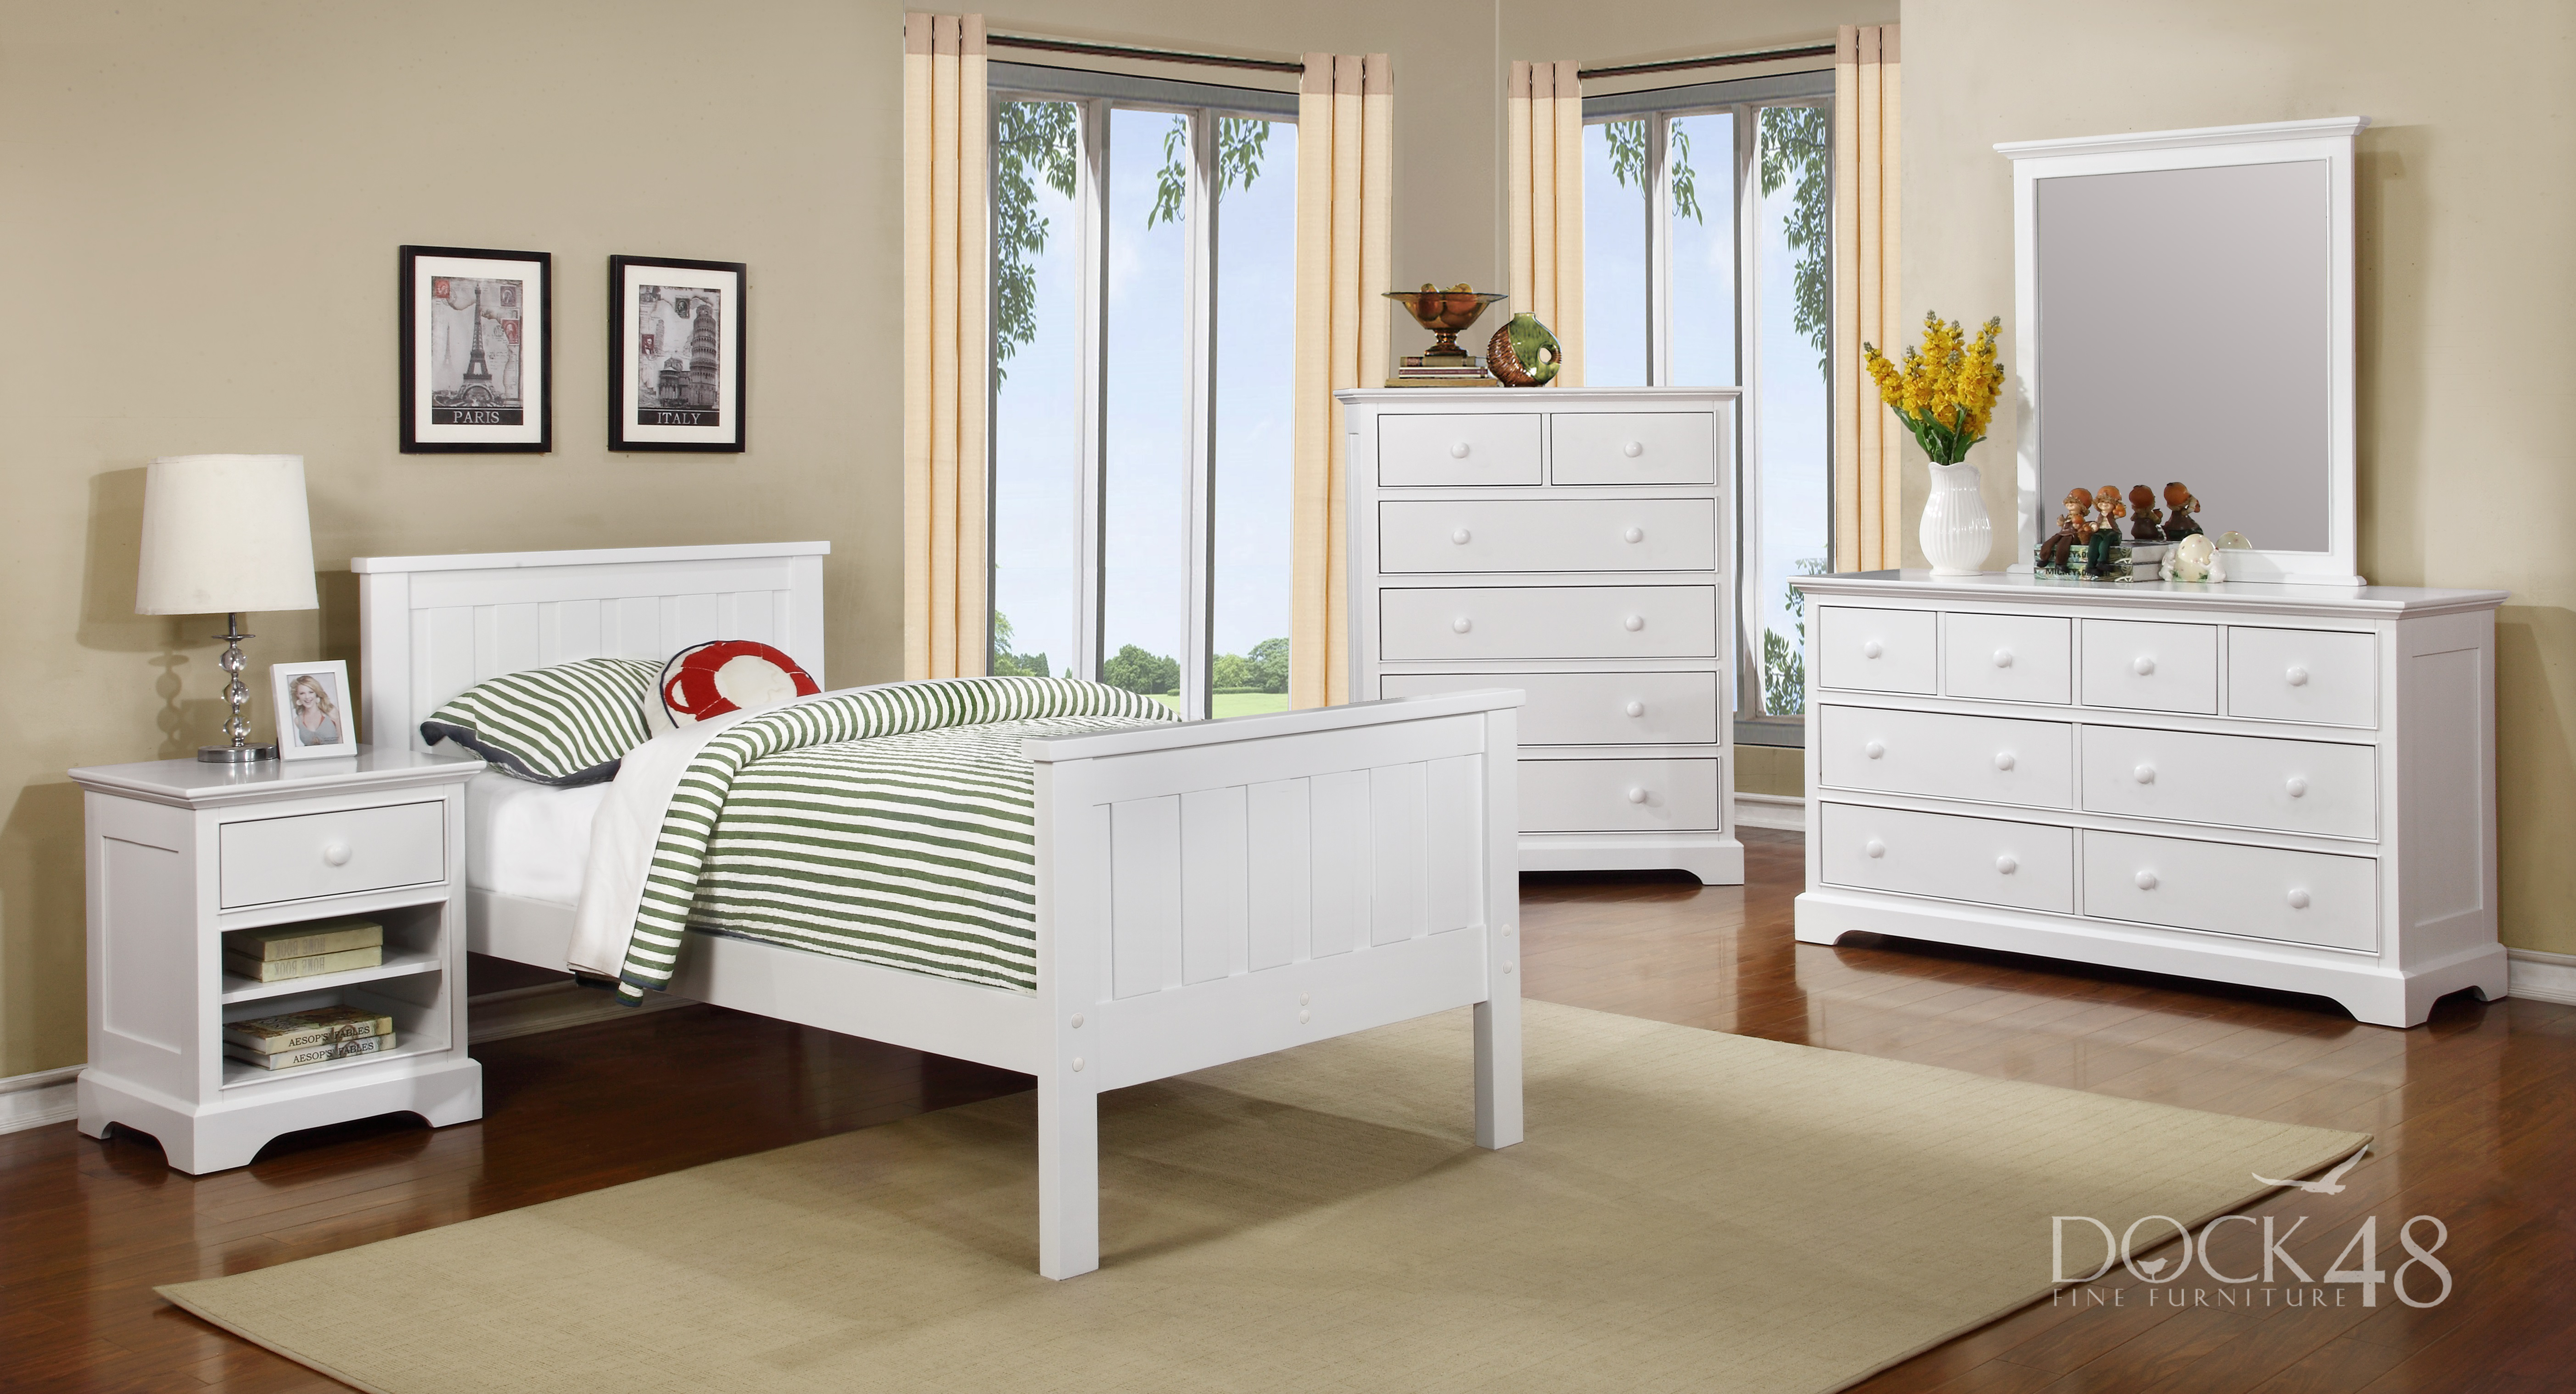 Jordan Twin Bed with Waterford Collection White